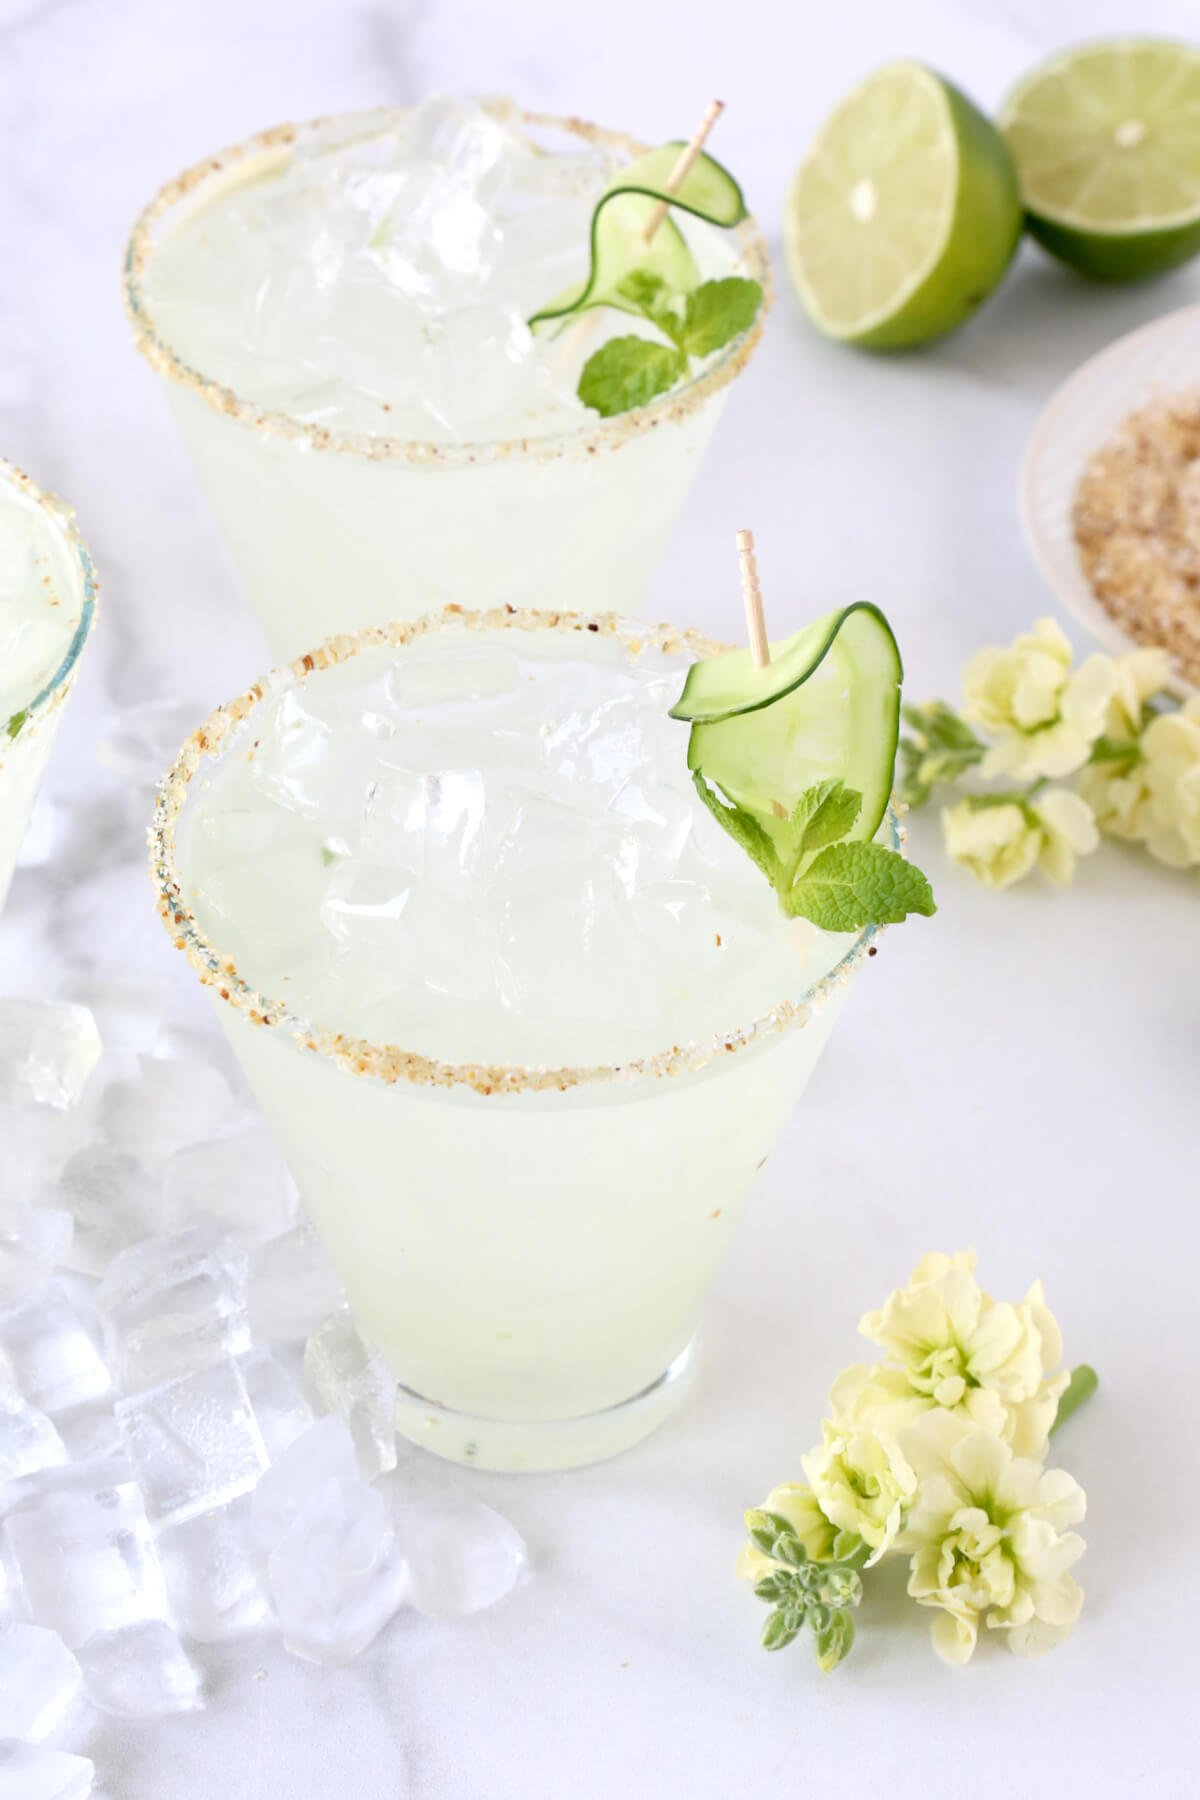 Two glasses filled with cucumber margarita with sliced cucumbers and a salted rim.